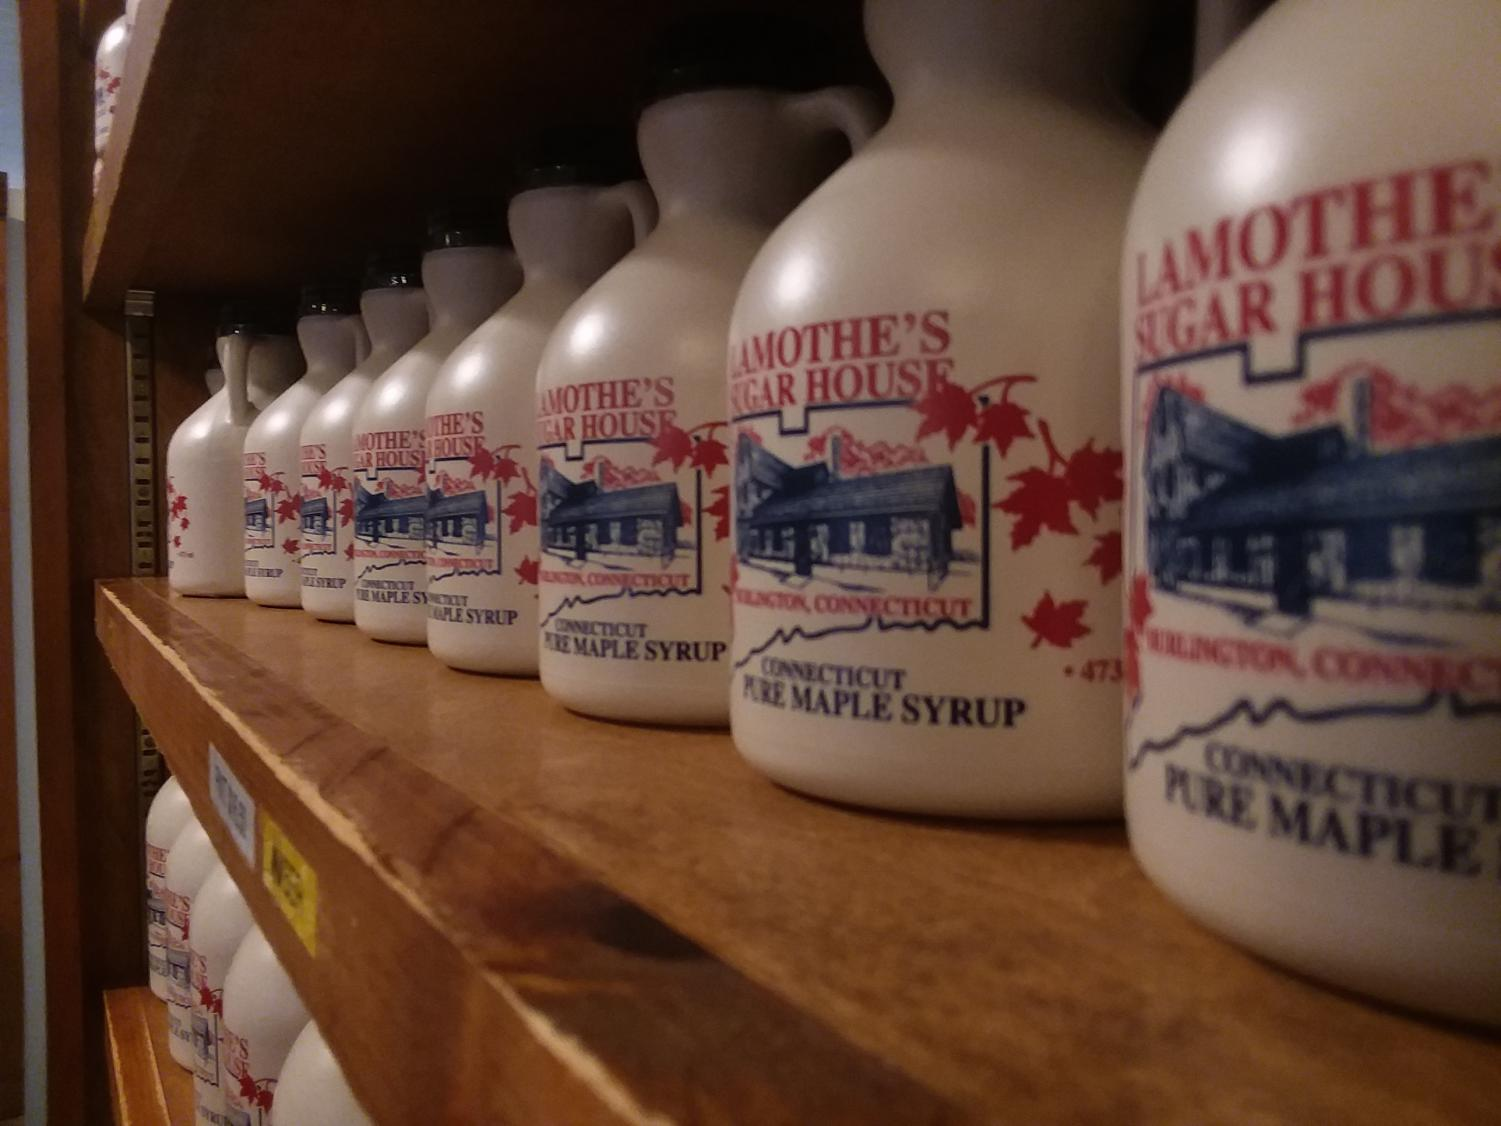 Lamothe%27s+Sugar+House+in+Burlington+is+in+the+midst+of+its+tapping+season.+The+owners+have+had+to+acclimate+to+changing+environmental+factors+to+deliver+its+trademark+syrup.+Kyle+Galvin+photo